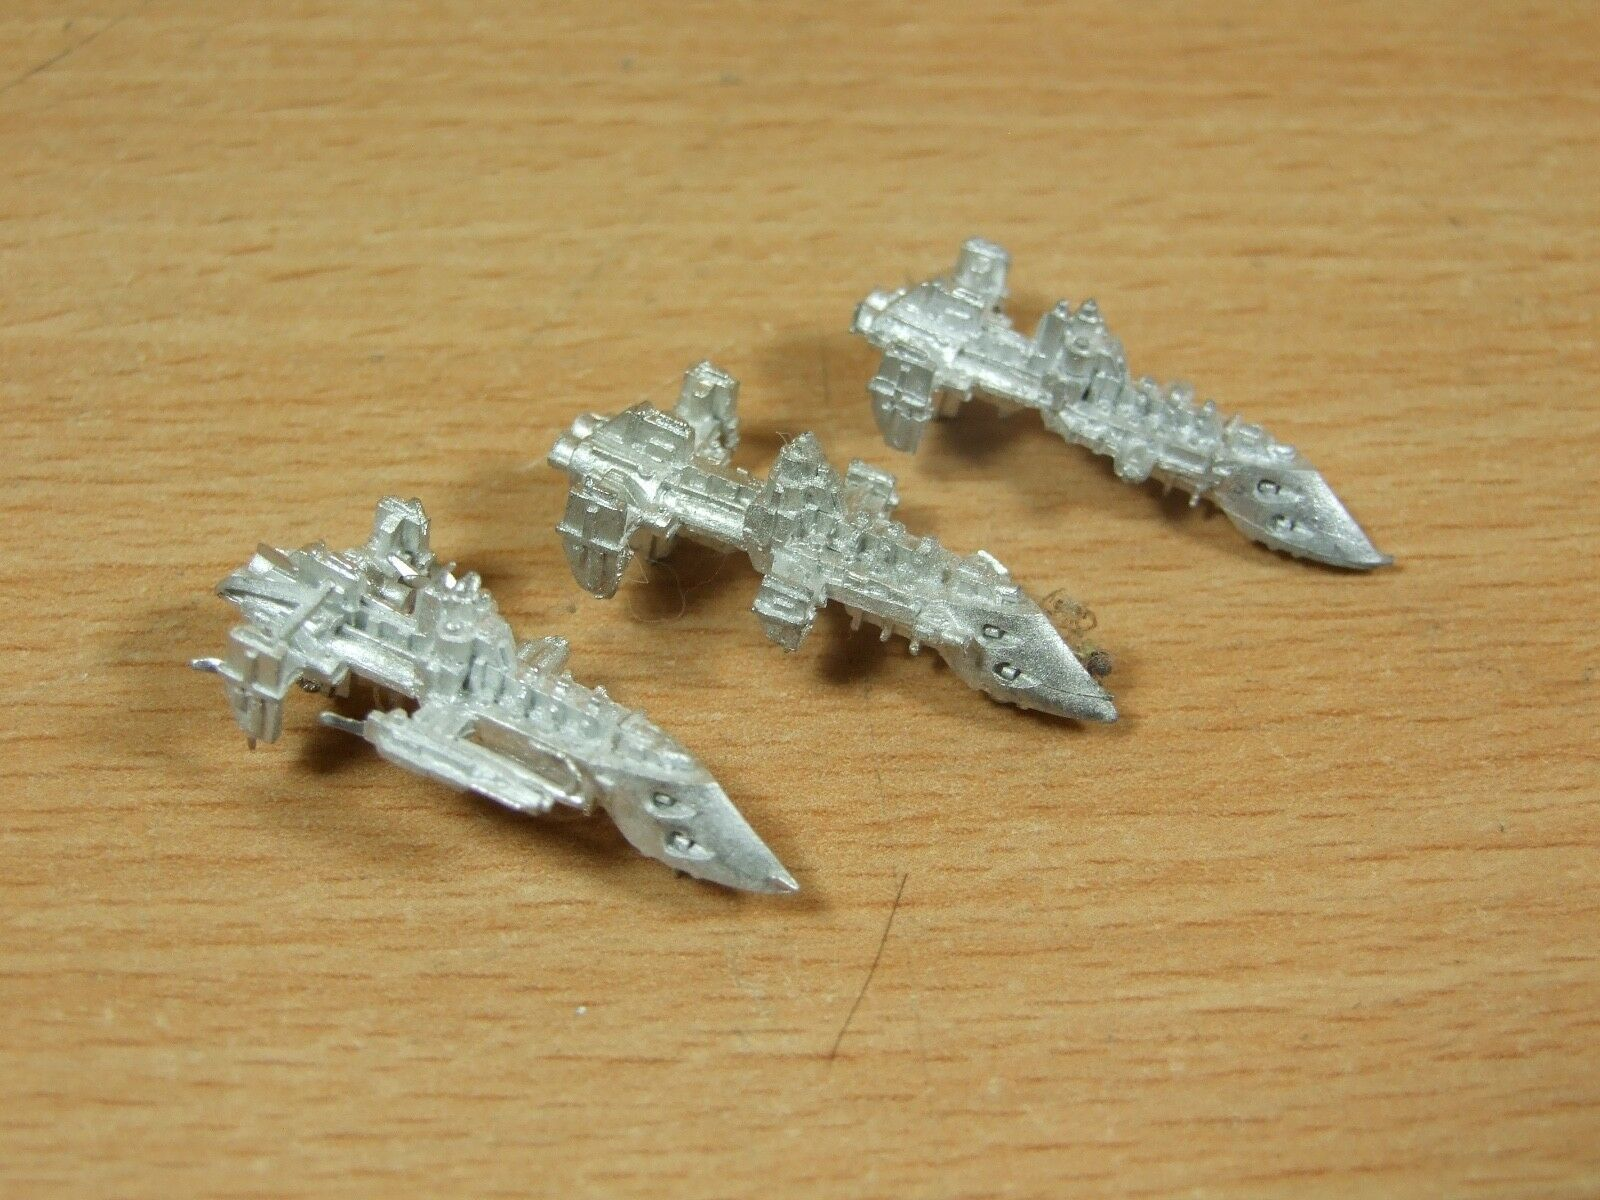 3 CLASSIC METAL BATTLEFLEET GOTHIC IMPERIAL COBRA DESTROYERS UNPAINTED (1988)